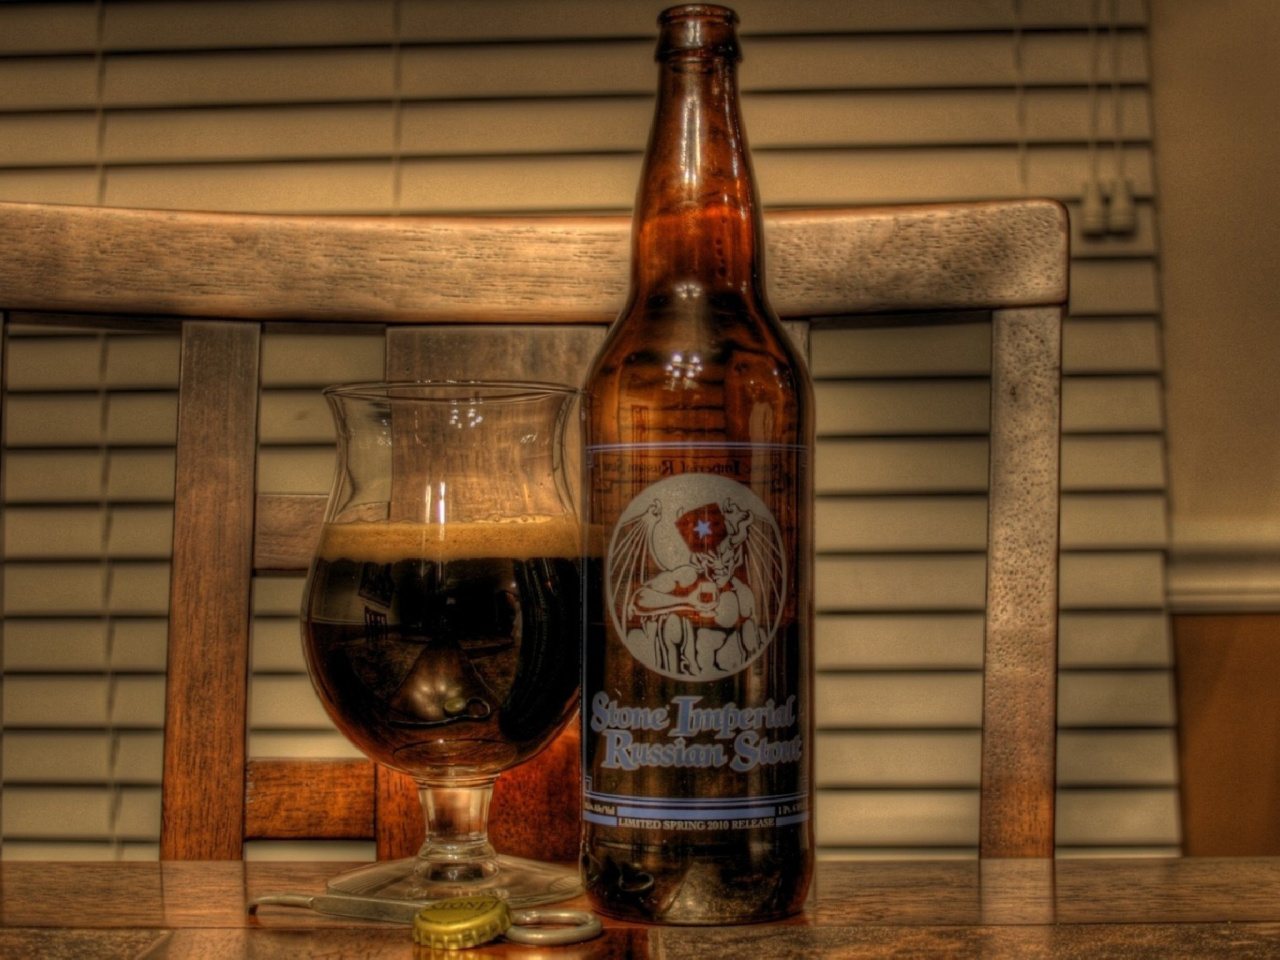 Das Russian Stout Beer Wallpaper 1280x960